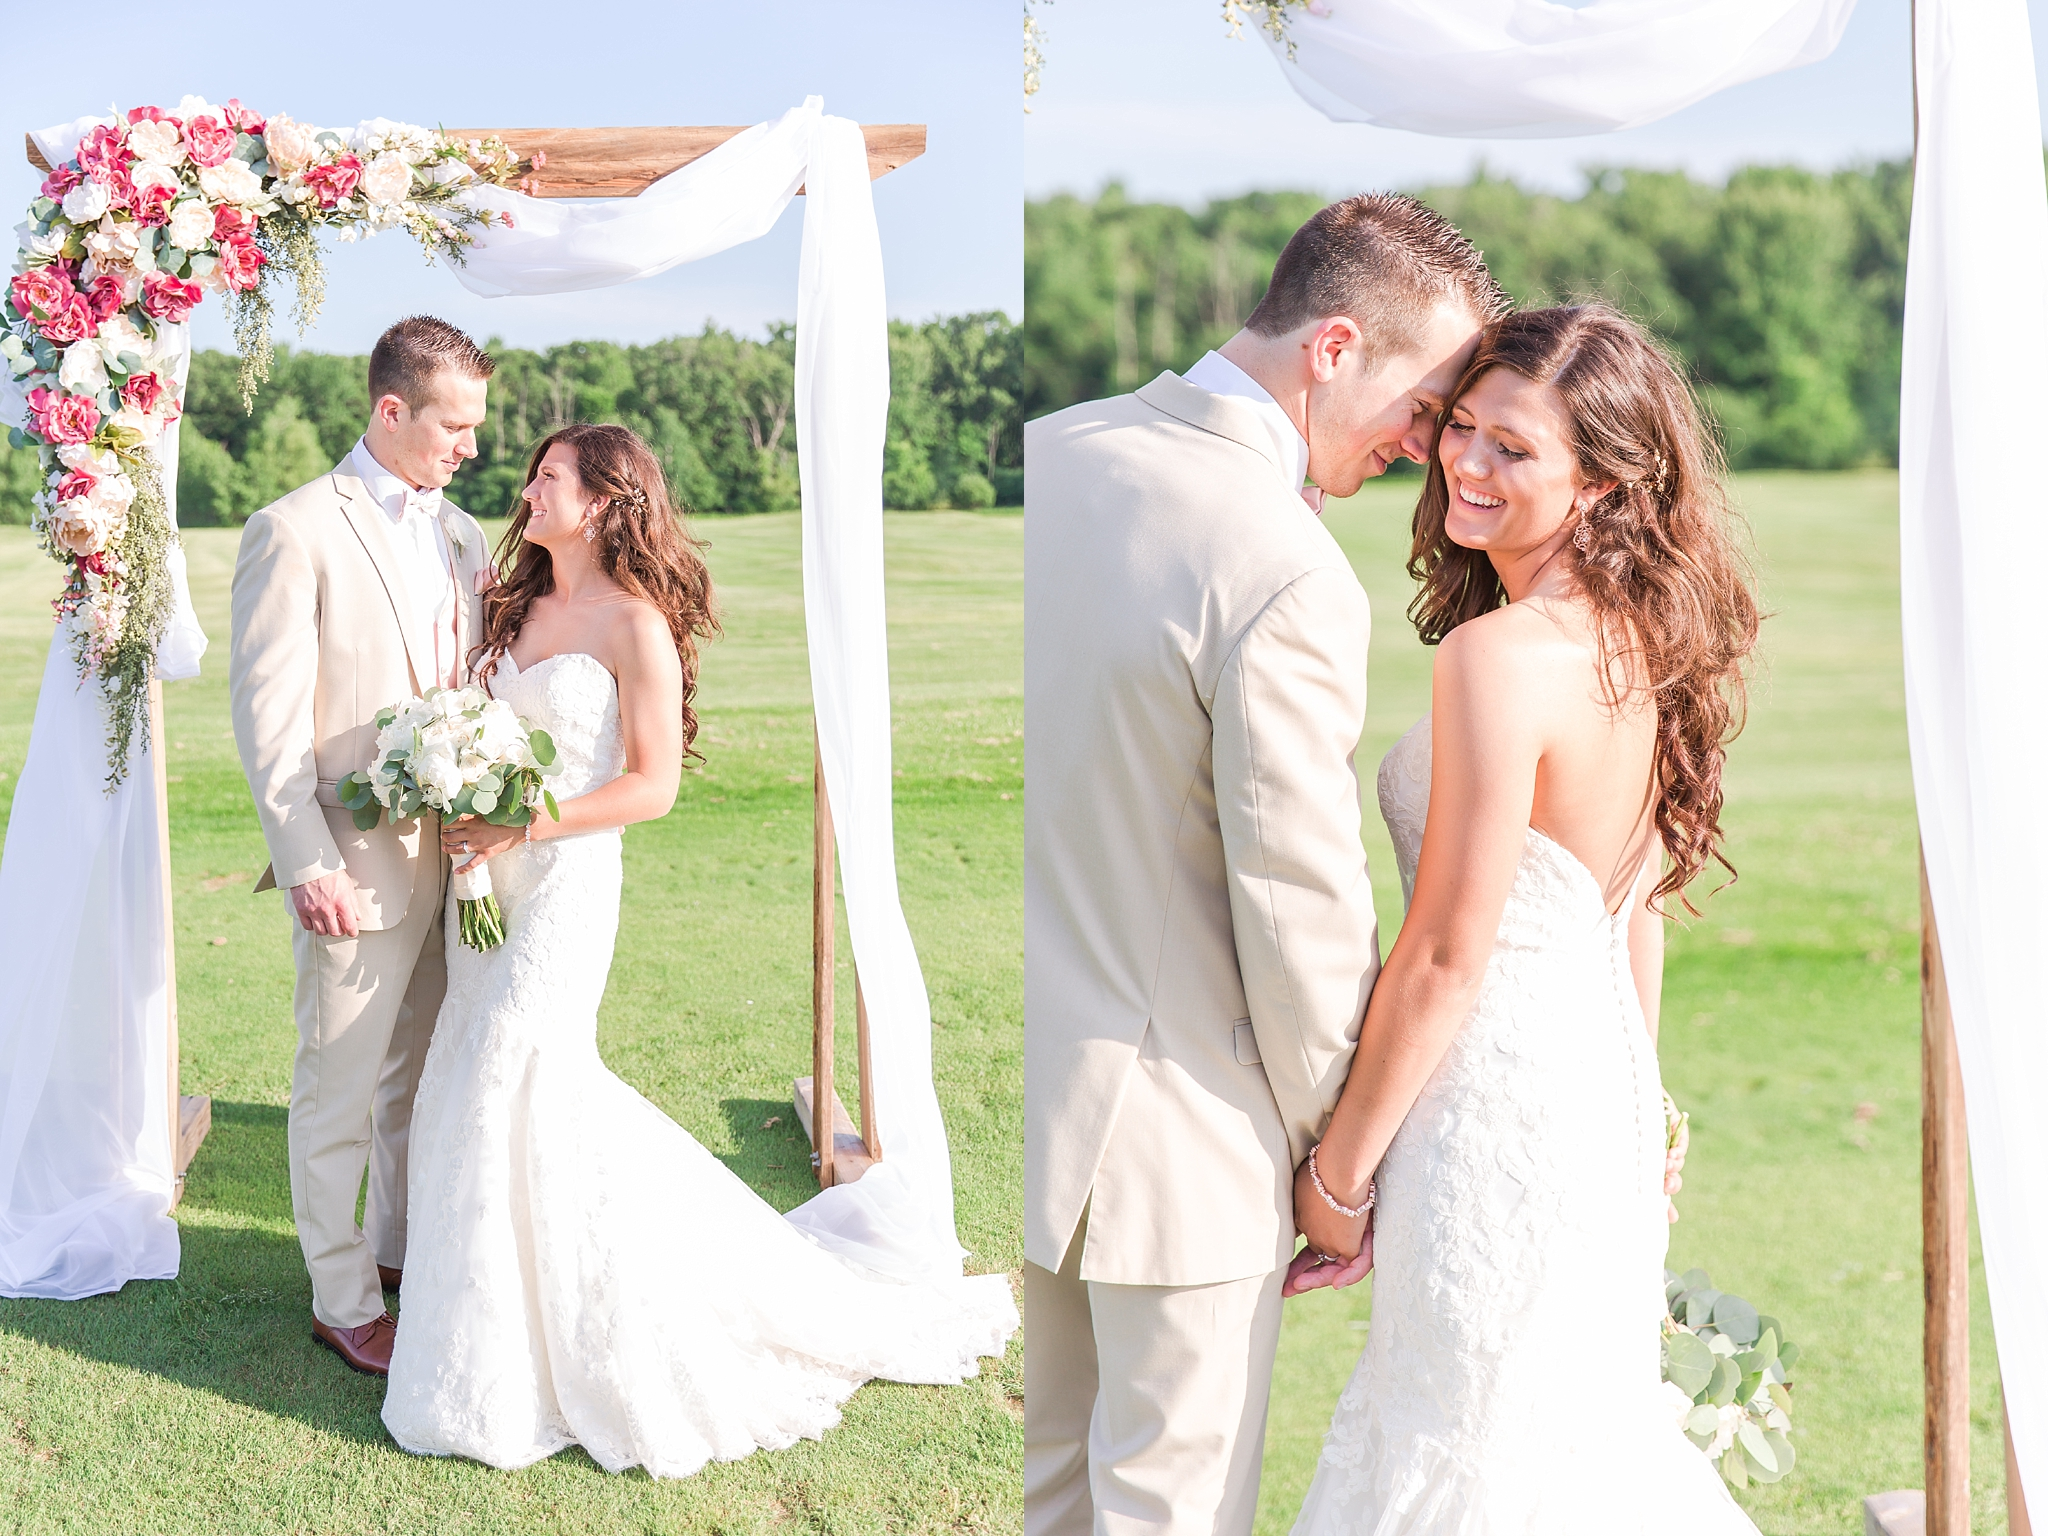 candid-timeless-wedding-photos-at-the-captains-club-in-grand-blanc-michigan-by-courtney-carolyn-photography_0067.jpg